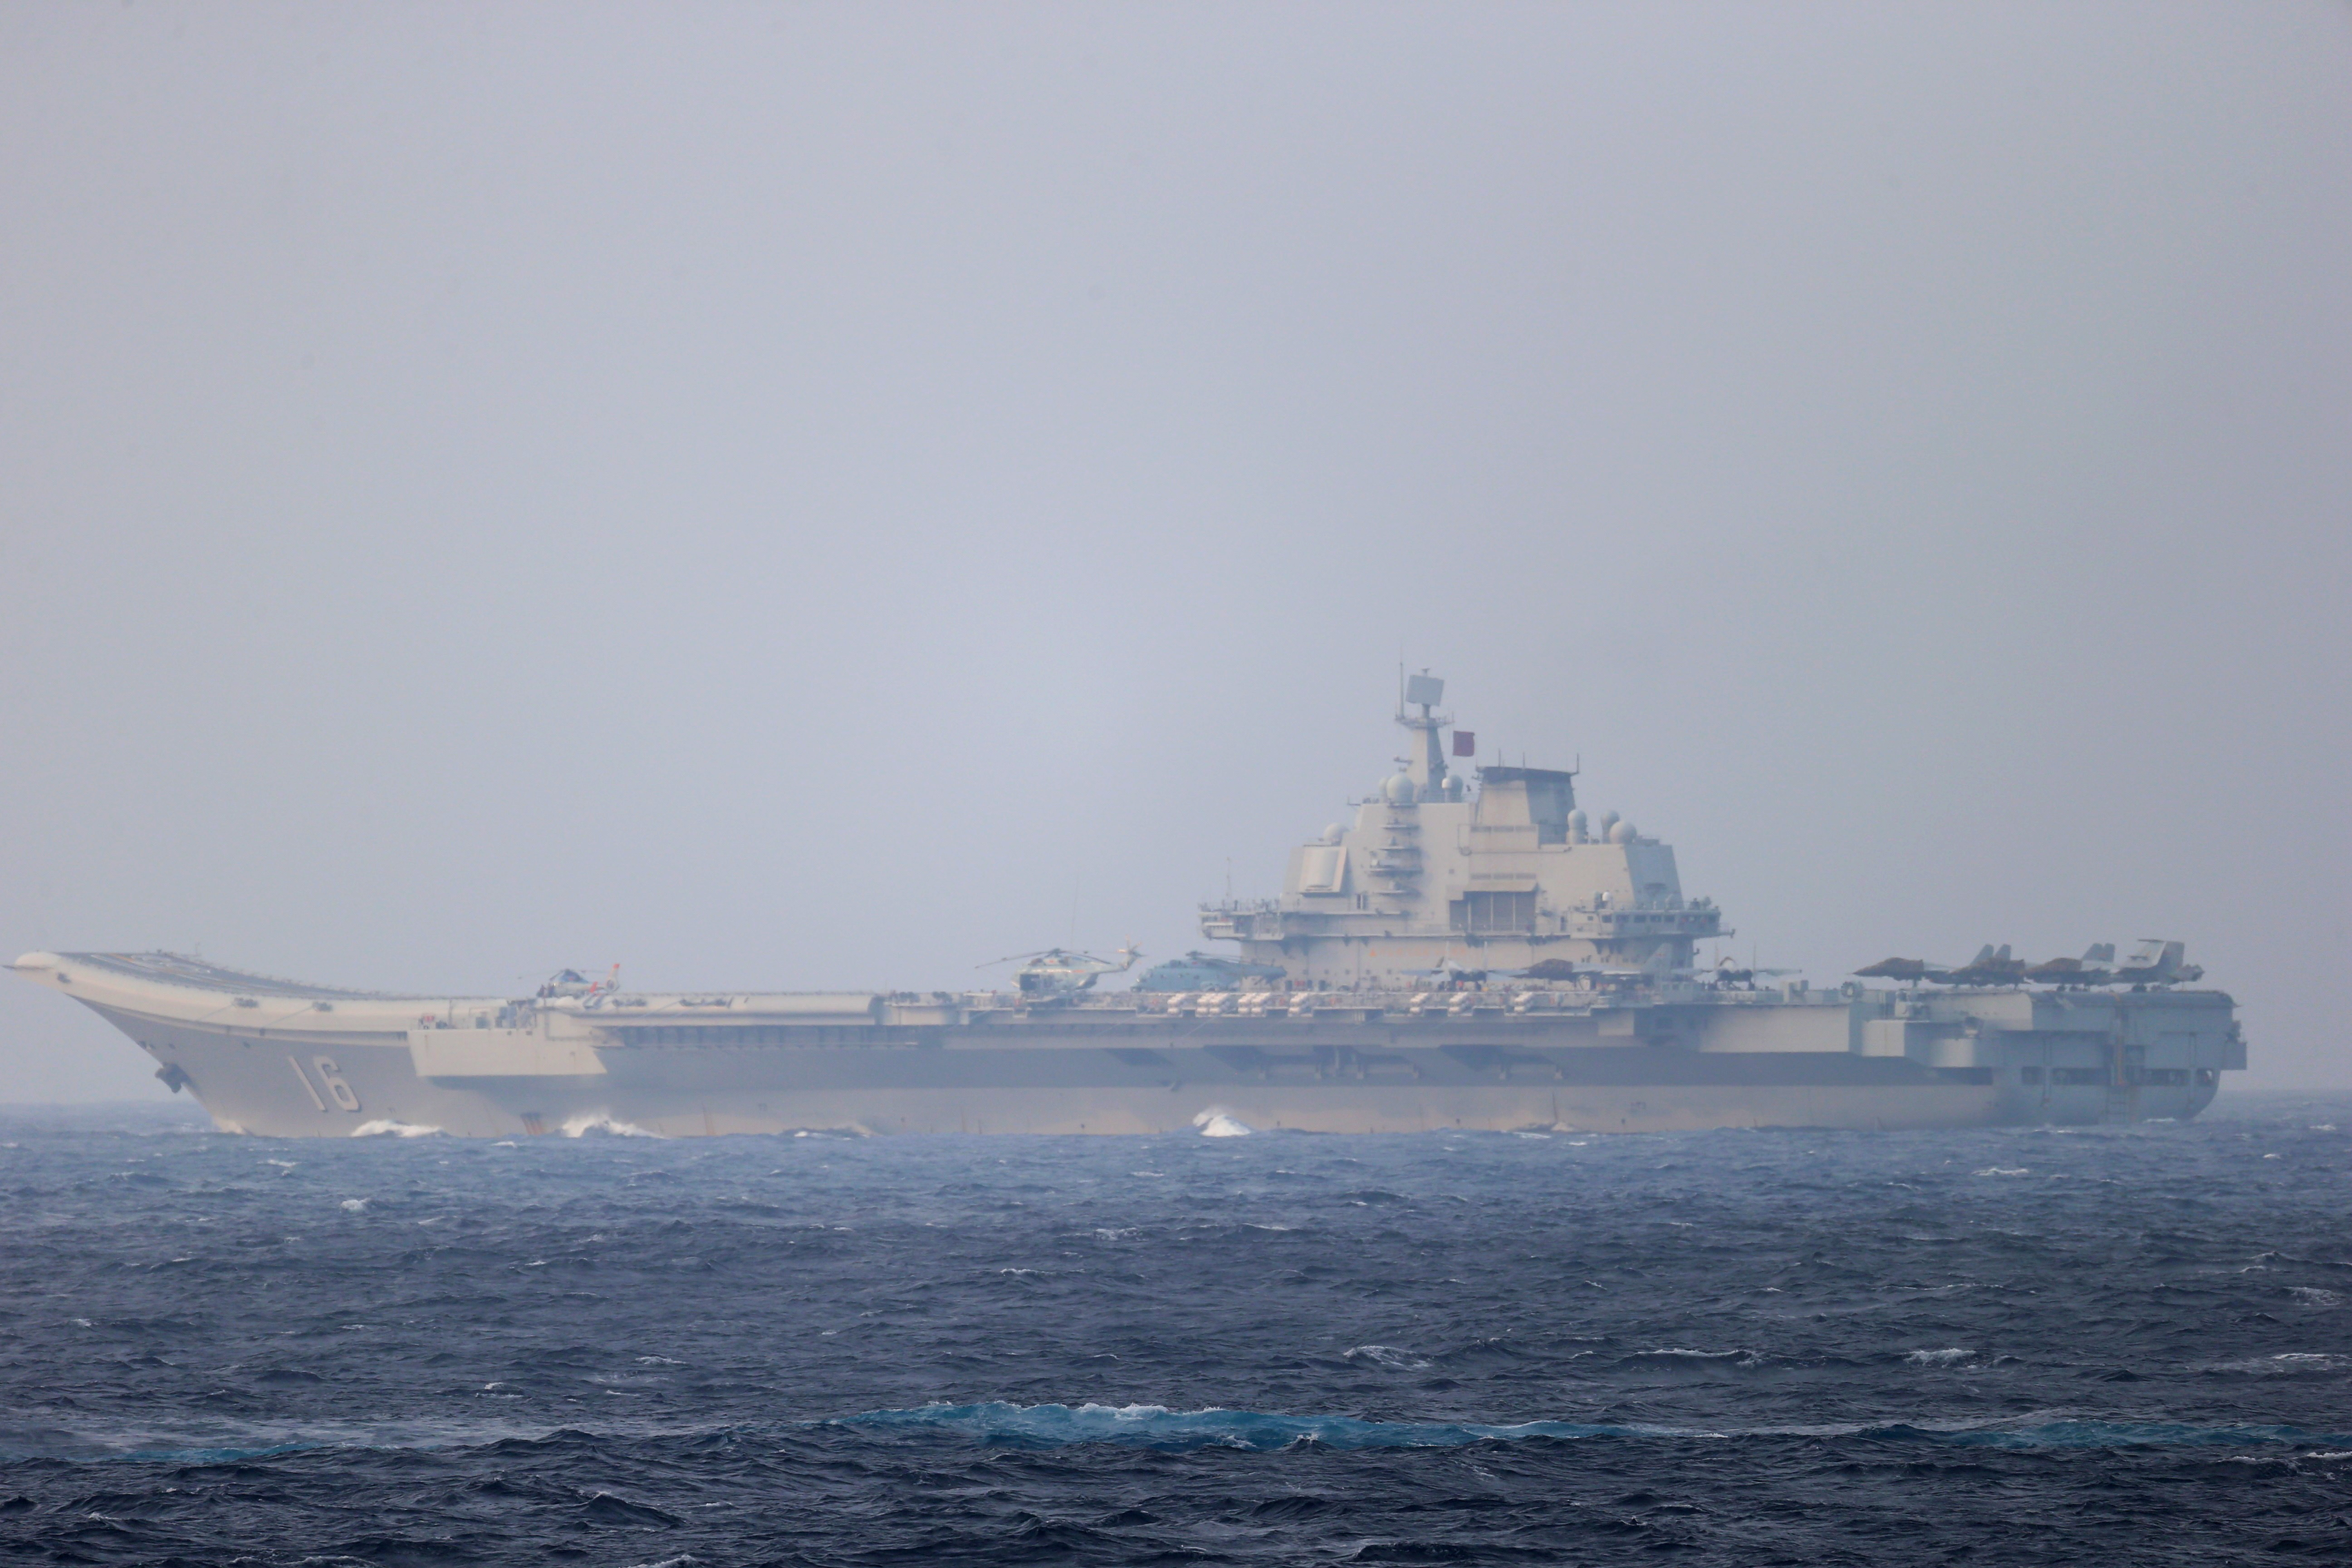 Chinese aircraft carrier Liaoning sails through the Miyako Strait near Okinawa on its way to the Pacific in this handout photo taken by Japan Self-Defense Forces and released by the Joint Staff Office of the Defense Ministry of Japan on April 4, 2021. Joint Staff Office of the Defense Ministry of Japan/HANDOUT via REUTERS